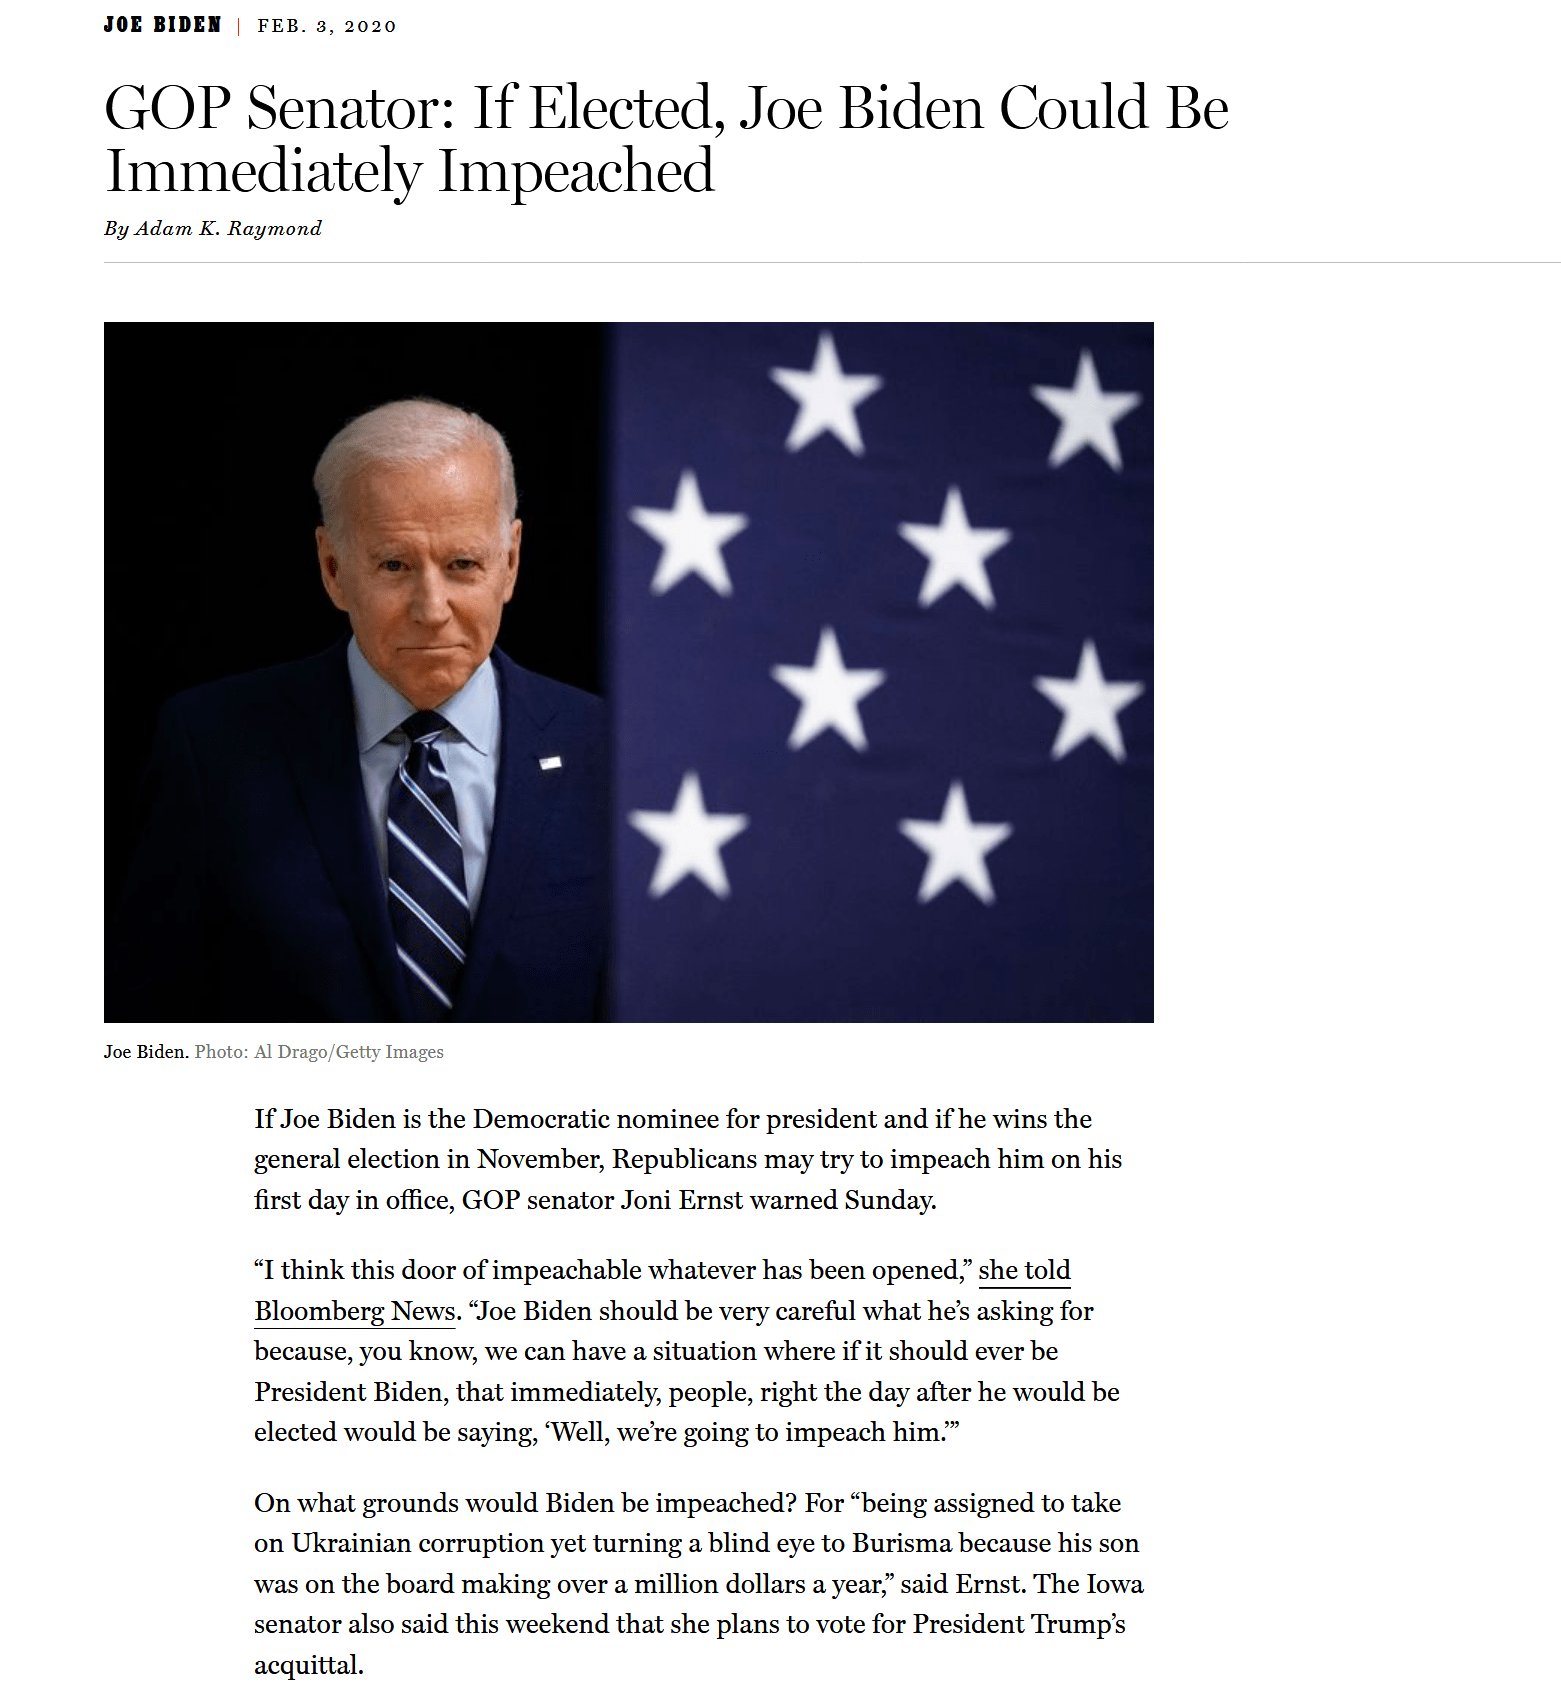 Republican Senator threatens to impeach Joe Biden